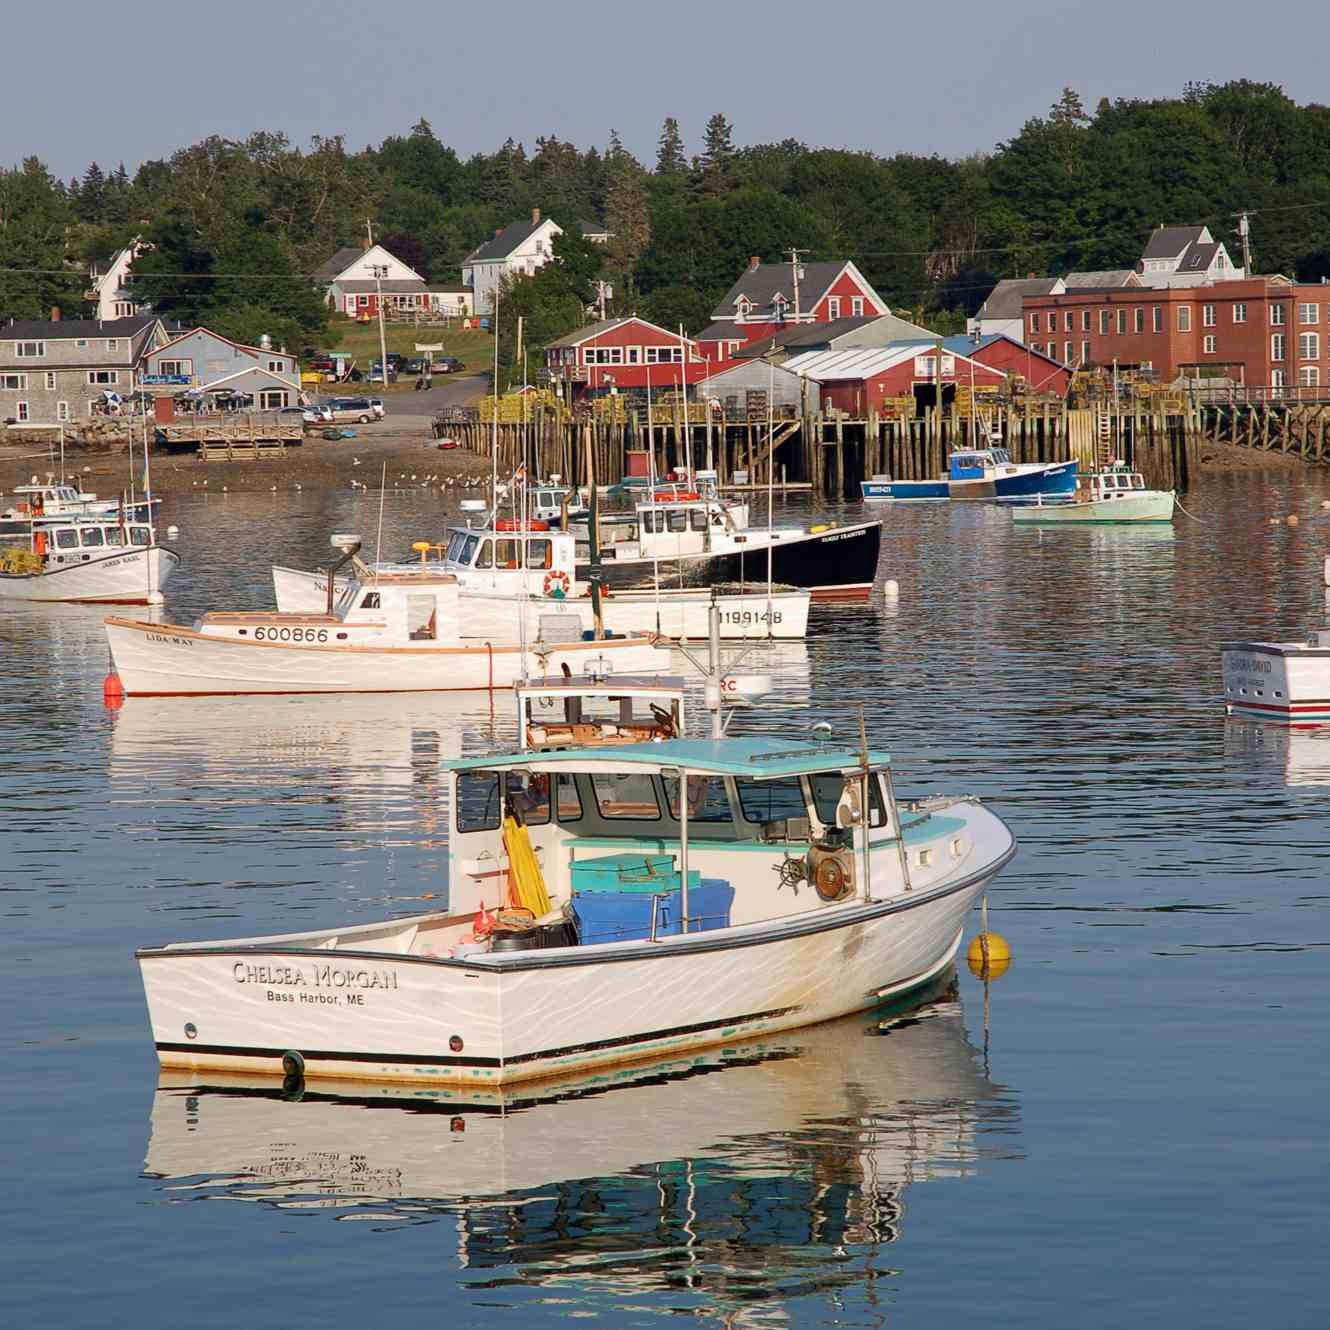 Bass Harbor Maine Photo from Thurston's Lobster